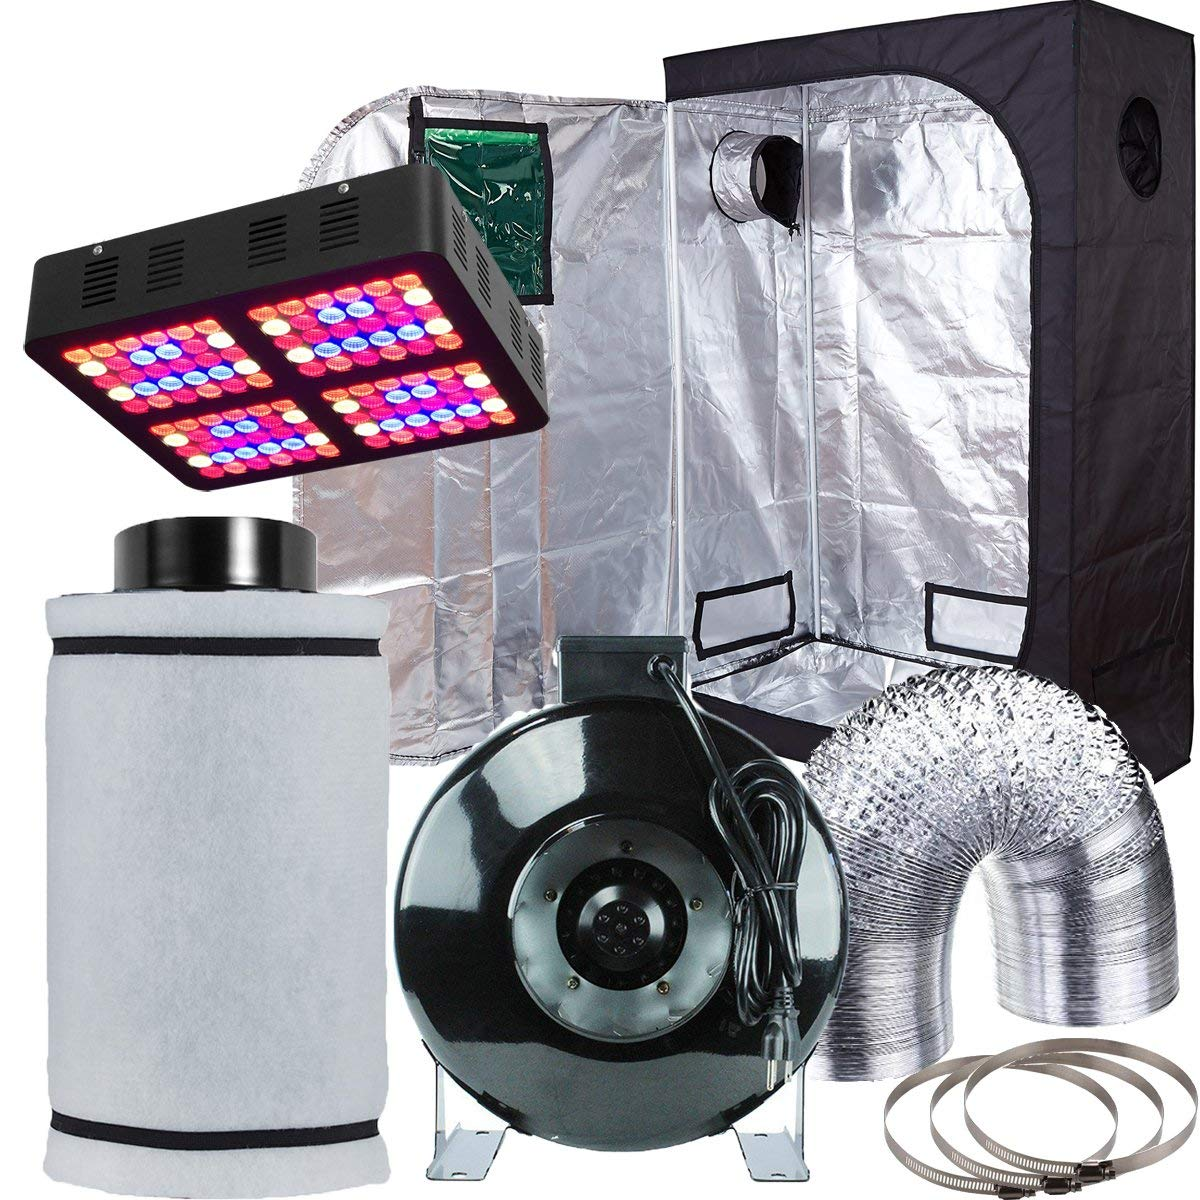 "Hydro Plus Grow Tent Complete Package Kit LED 600W Grow Light + 6"" Fan Filter Ventilation Kit + 48""x24""x72"" w/Observation Window Dark Room Hydroponic Indoor Plants Growing System (48""x24""x72"" Kit2)"